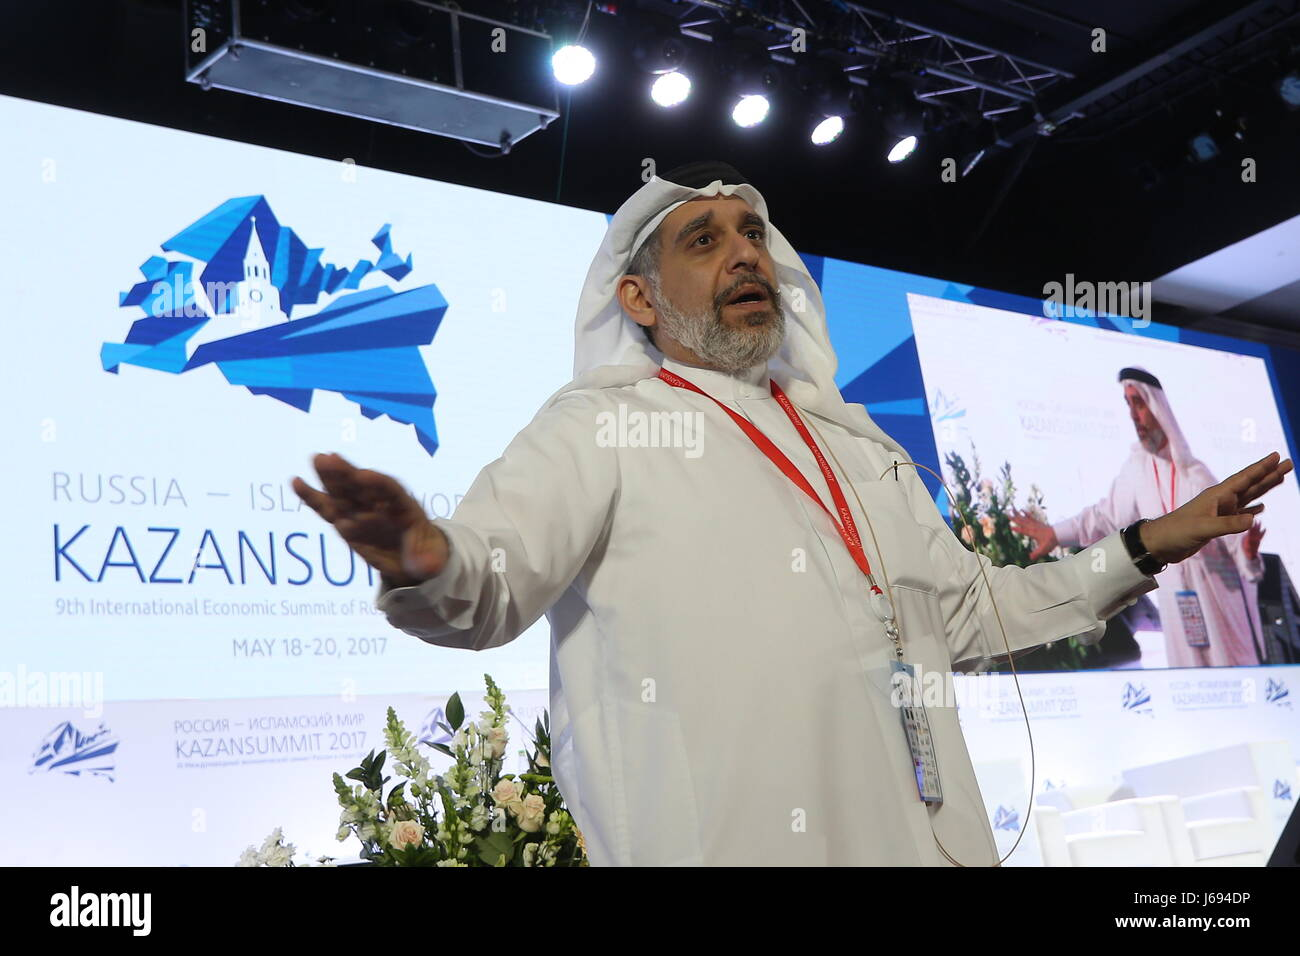 Kazan, Russia. 19th May, 2017. Chairman of The Kanoo Group, Mishal Hamed Kanoo, speaks at the 9th International - Stock Image